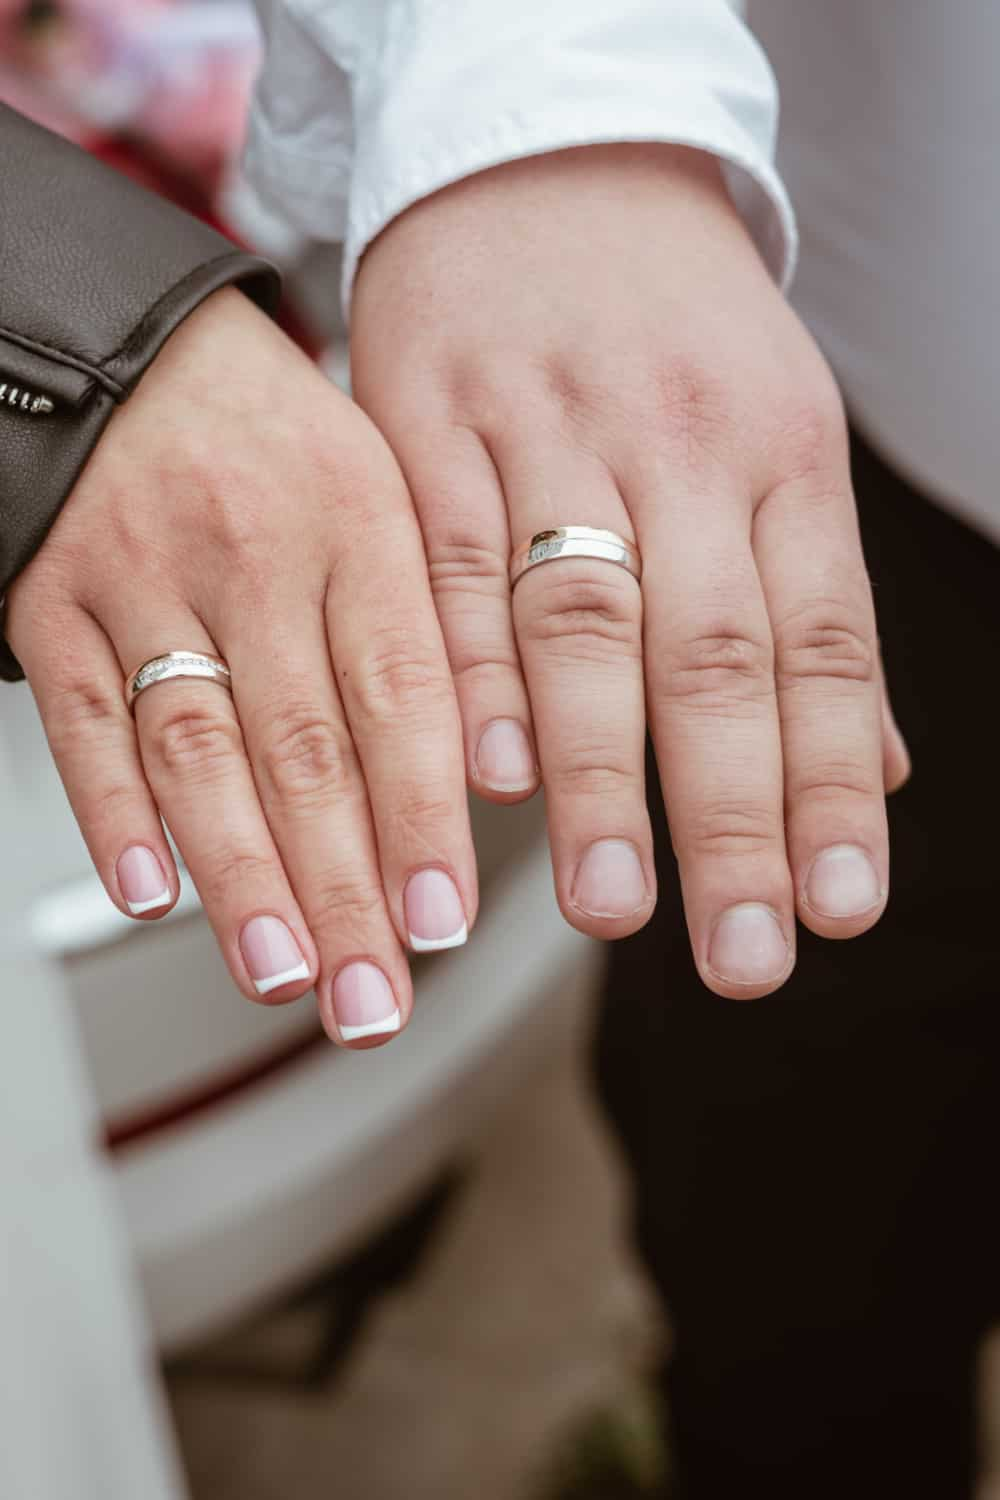 Promise Ring Meaning Finger: What Finger Does a Promise